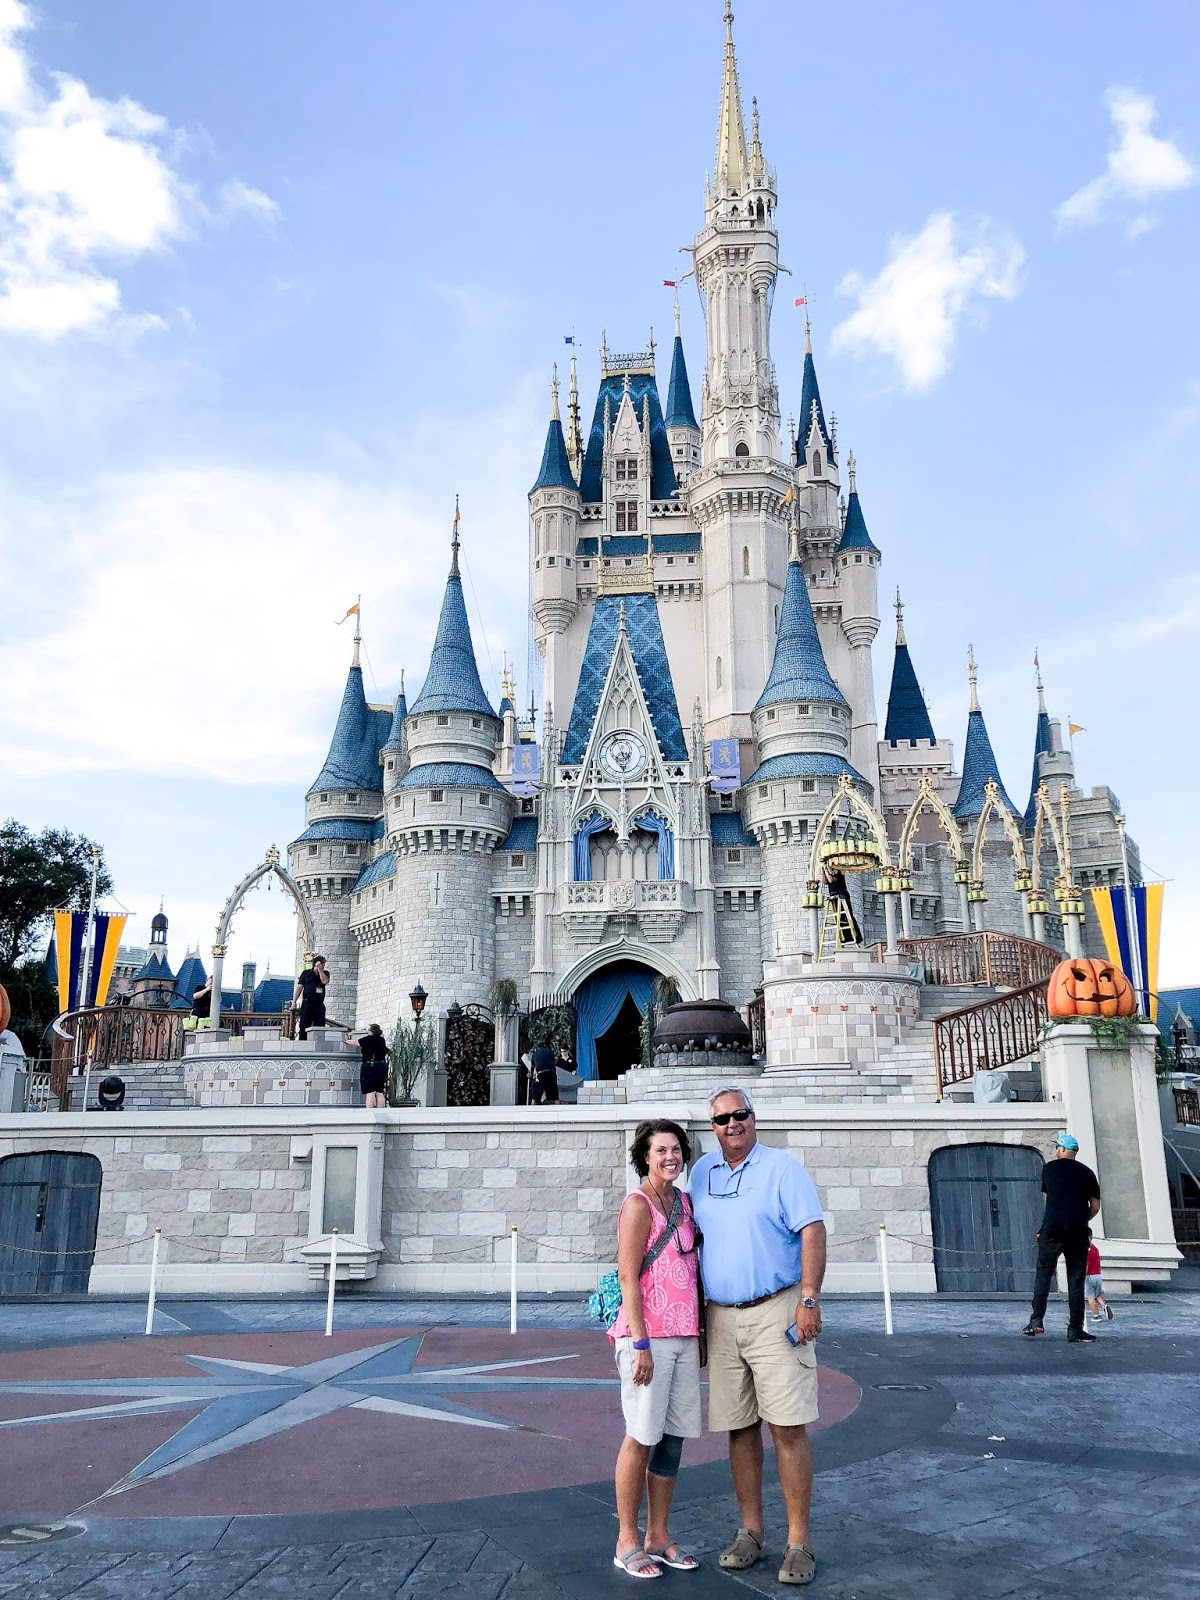 The Best Place to Stay In Disney World on a Multi-Generational Trip